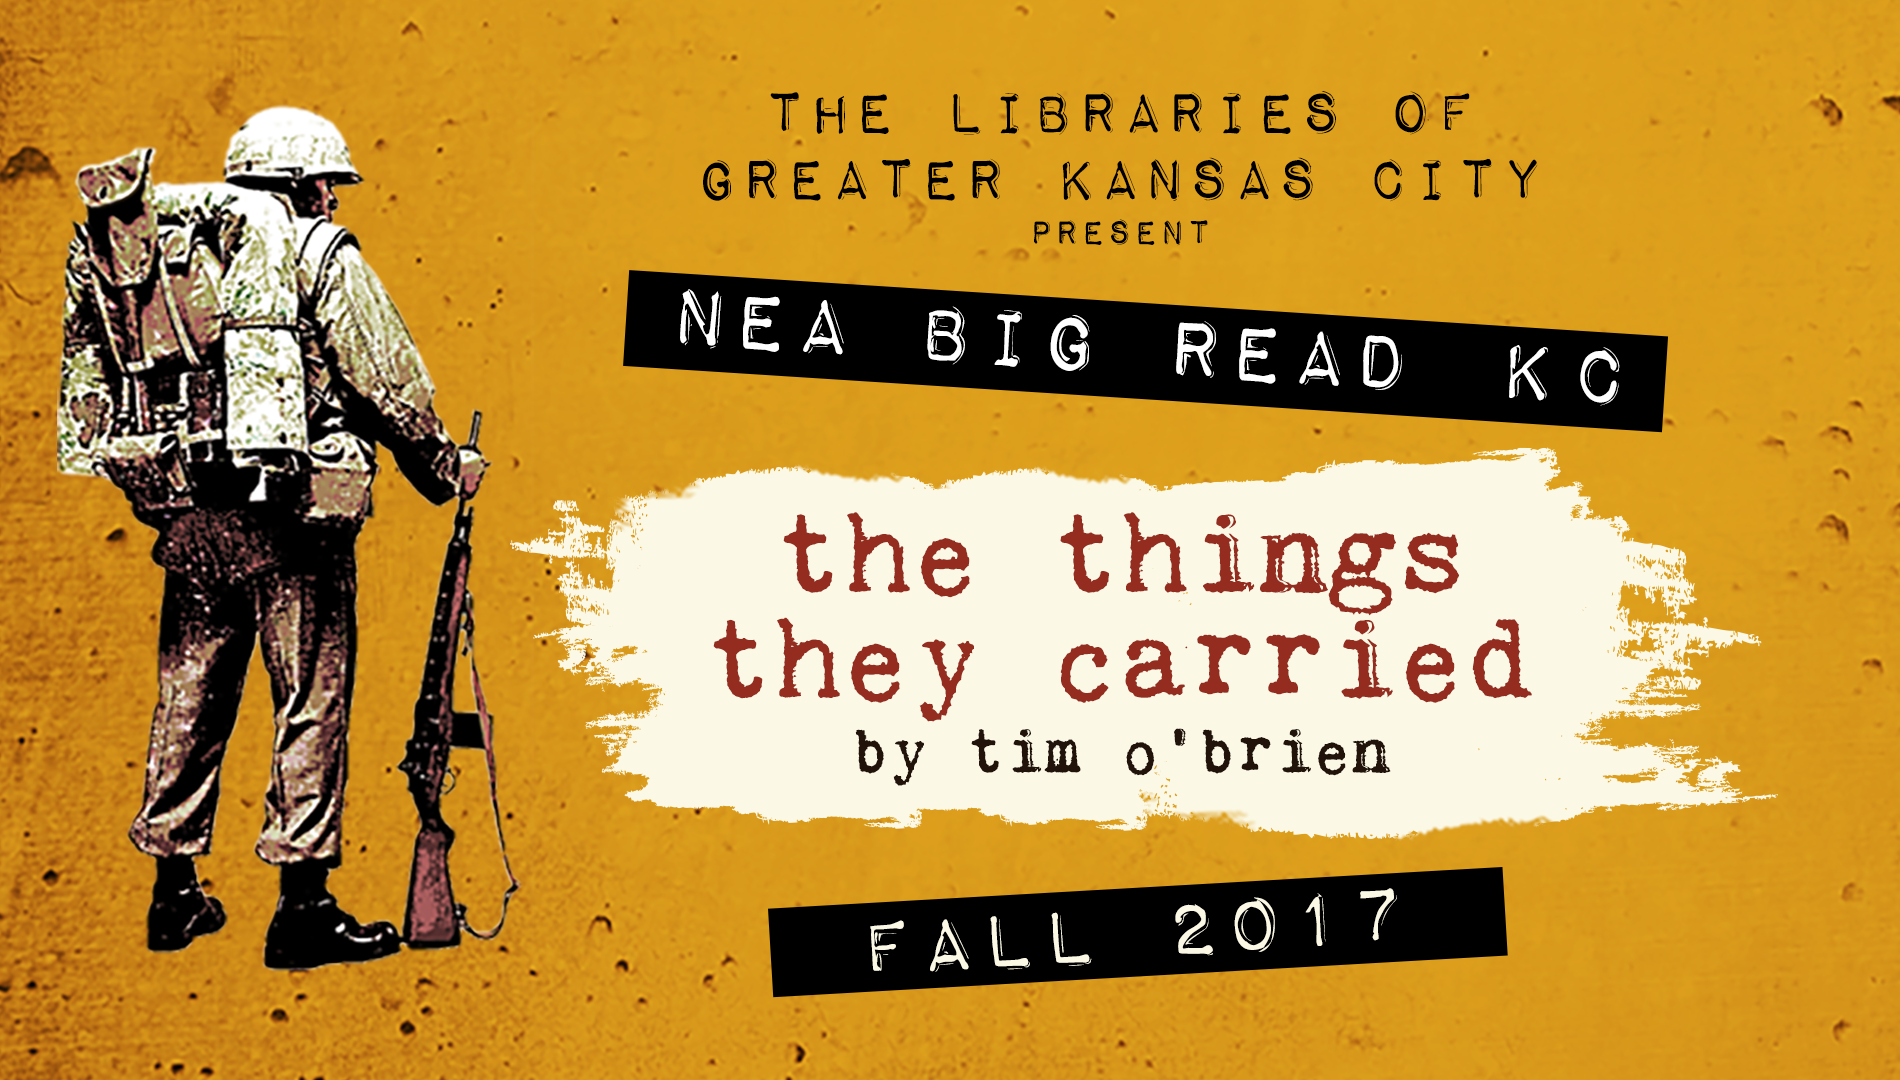 NEA Big Read - The Things They Carried